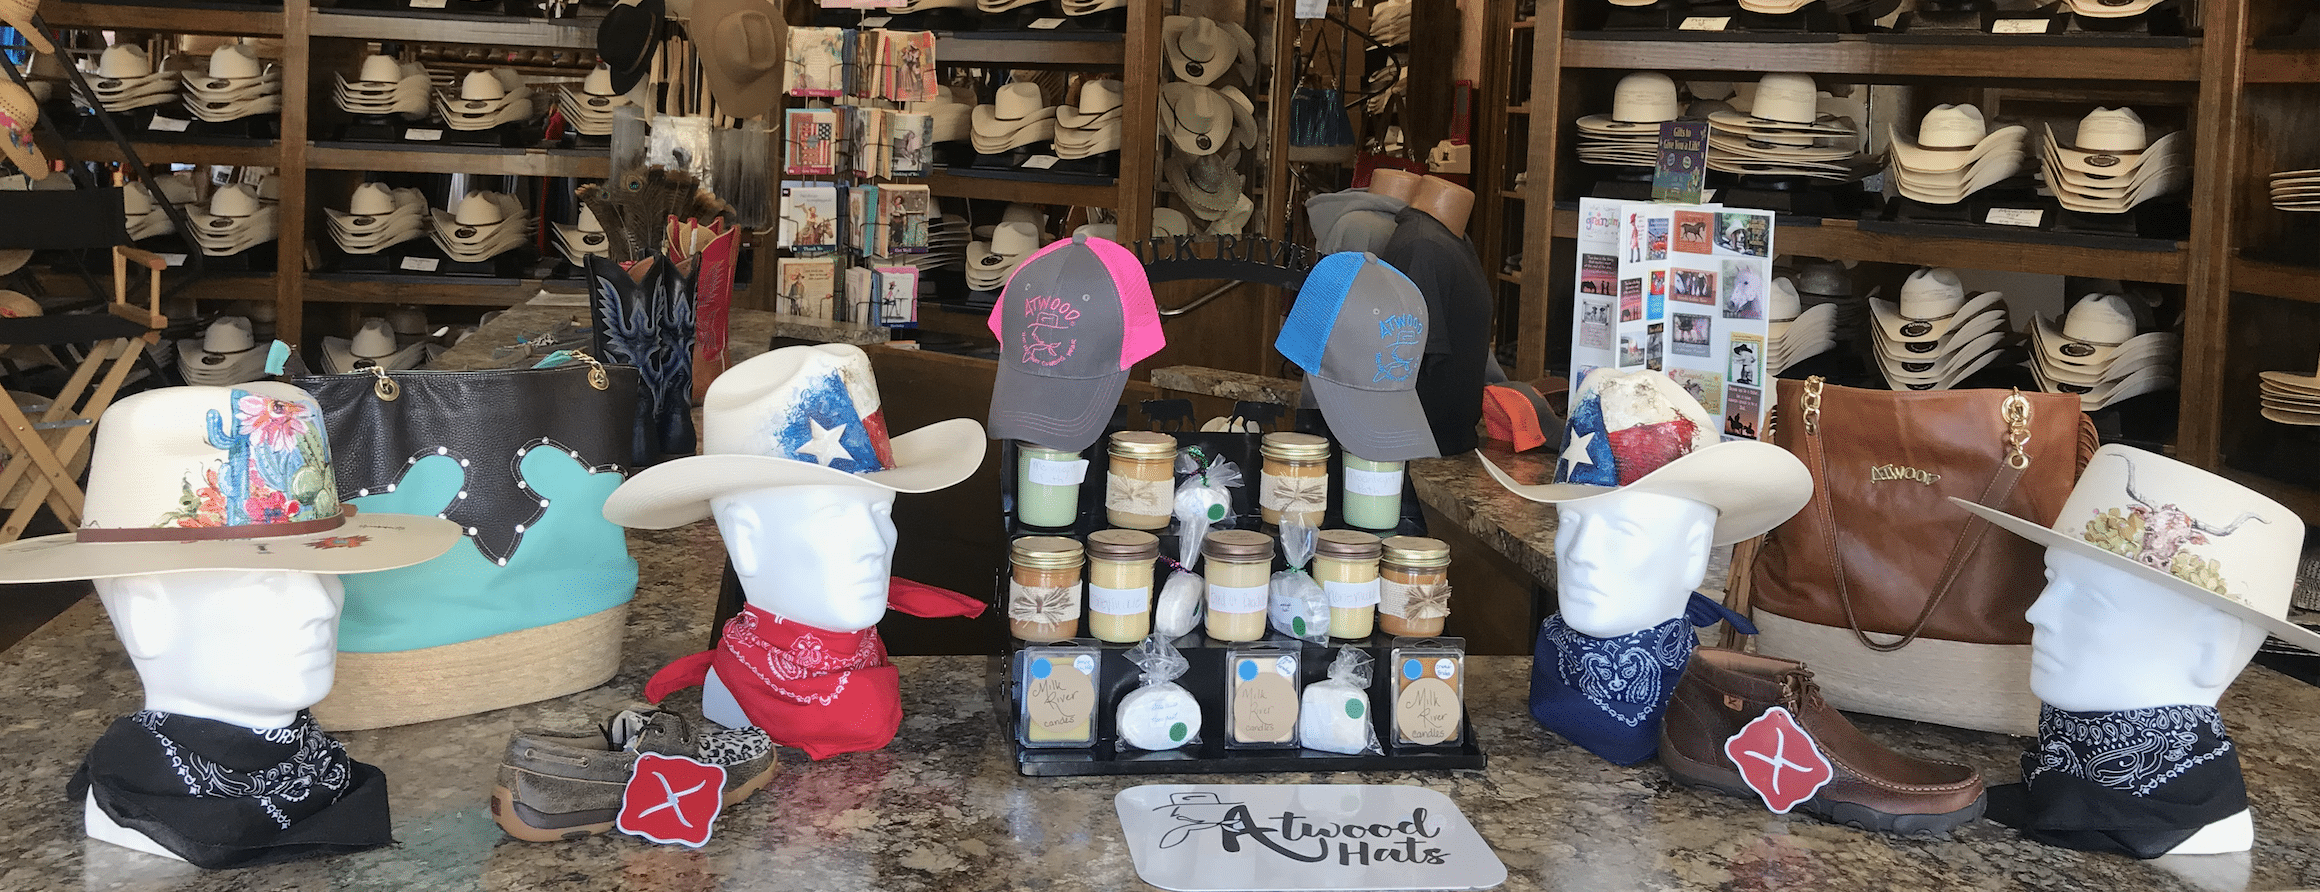 Windmill Mercantile, Atwood Hats, Western Wear, Cowboy hats